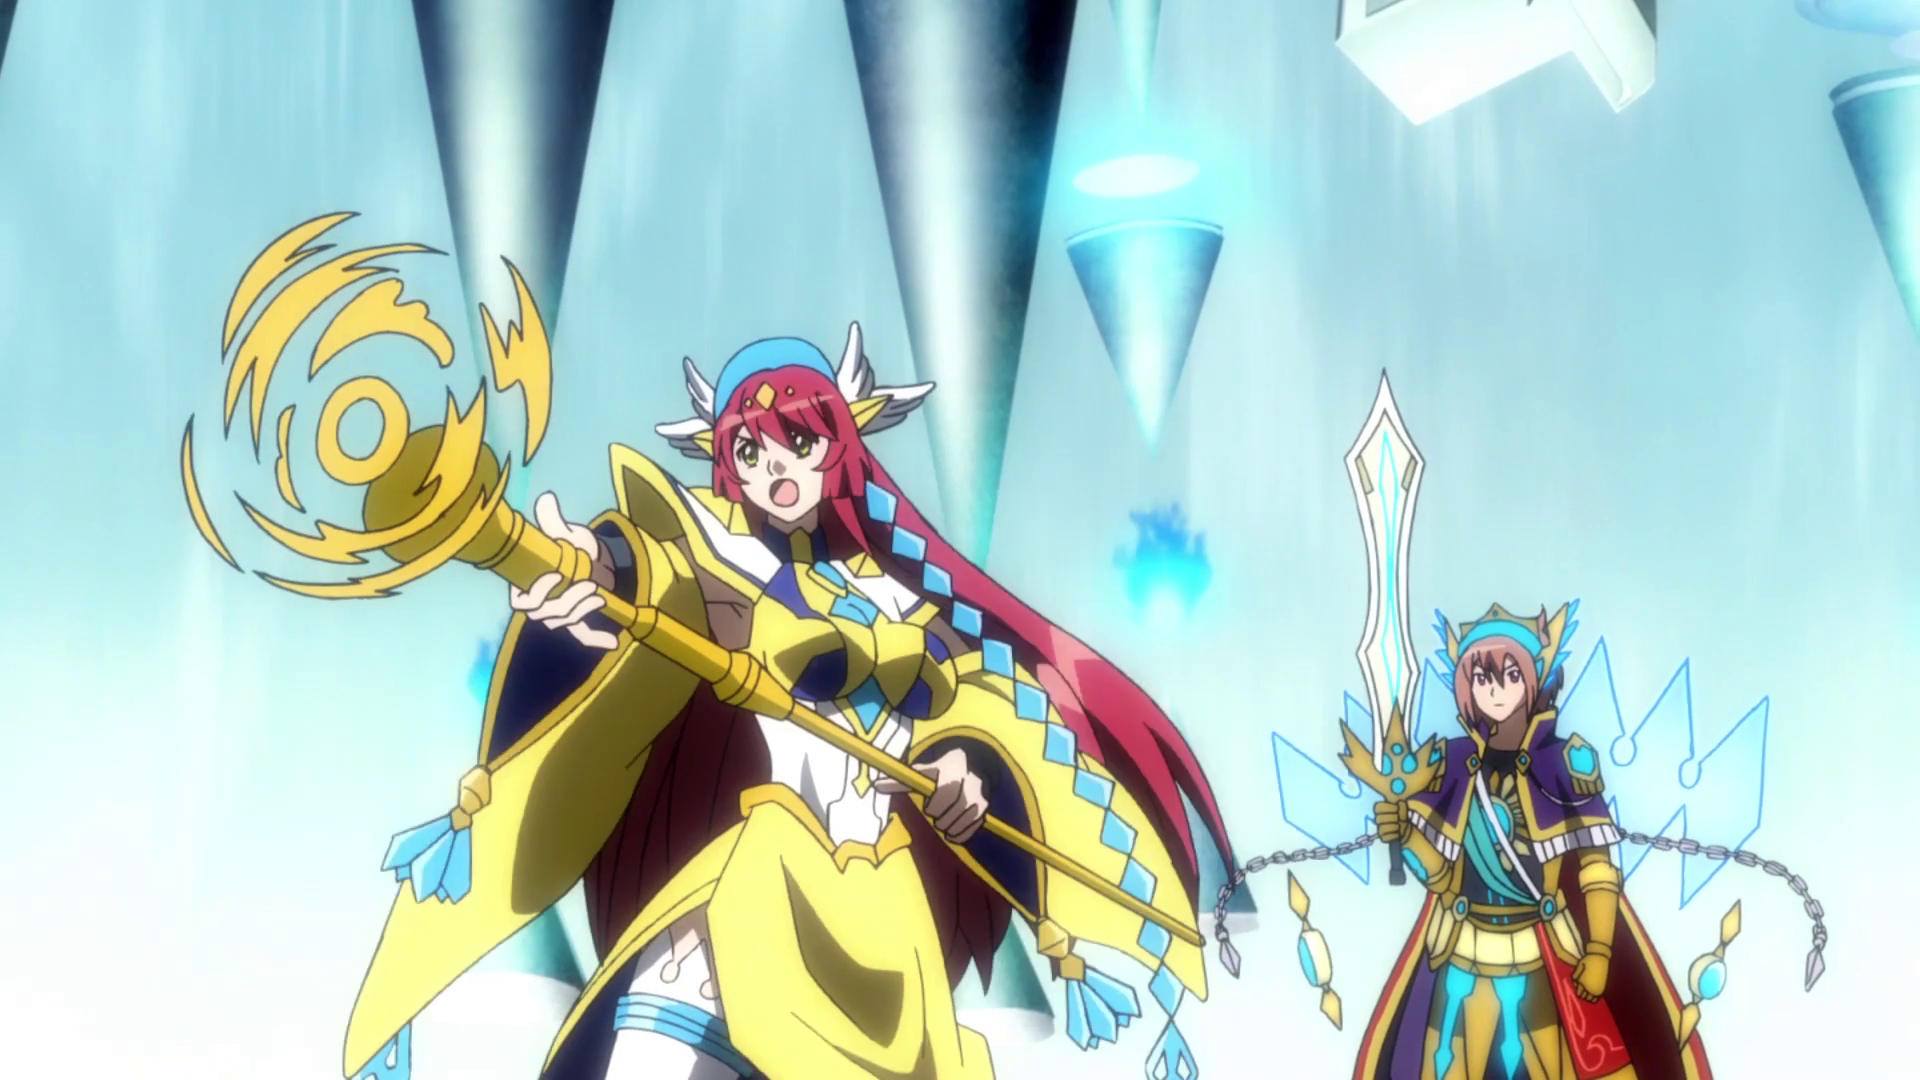 Holy mage alessia anime nx nc 4 png